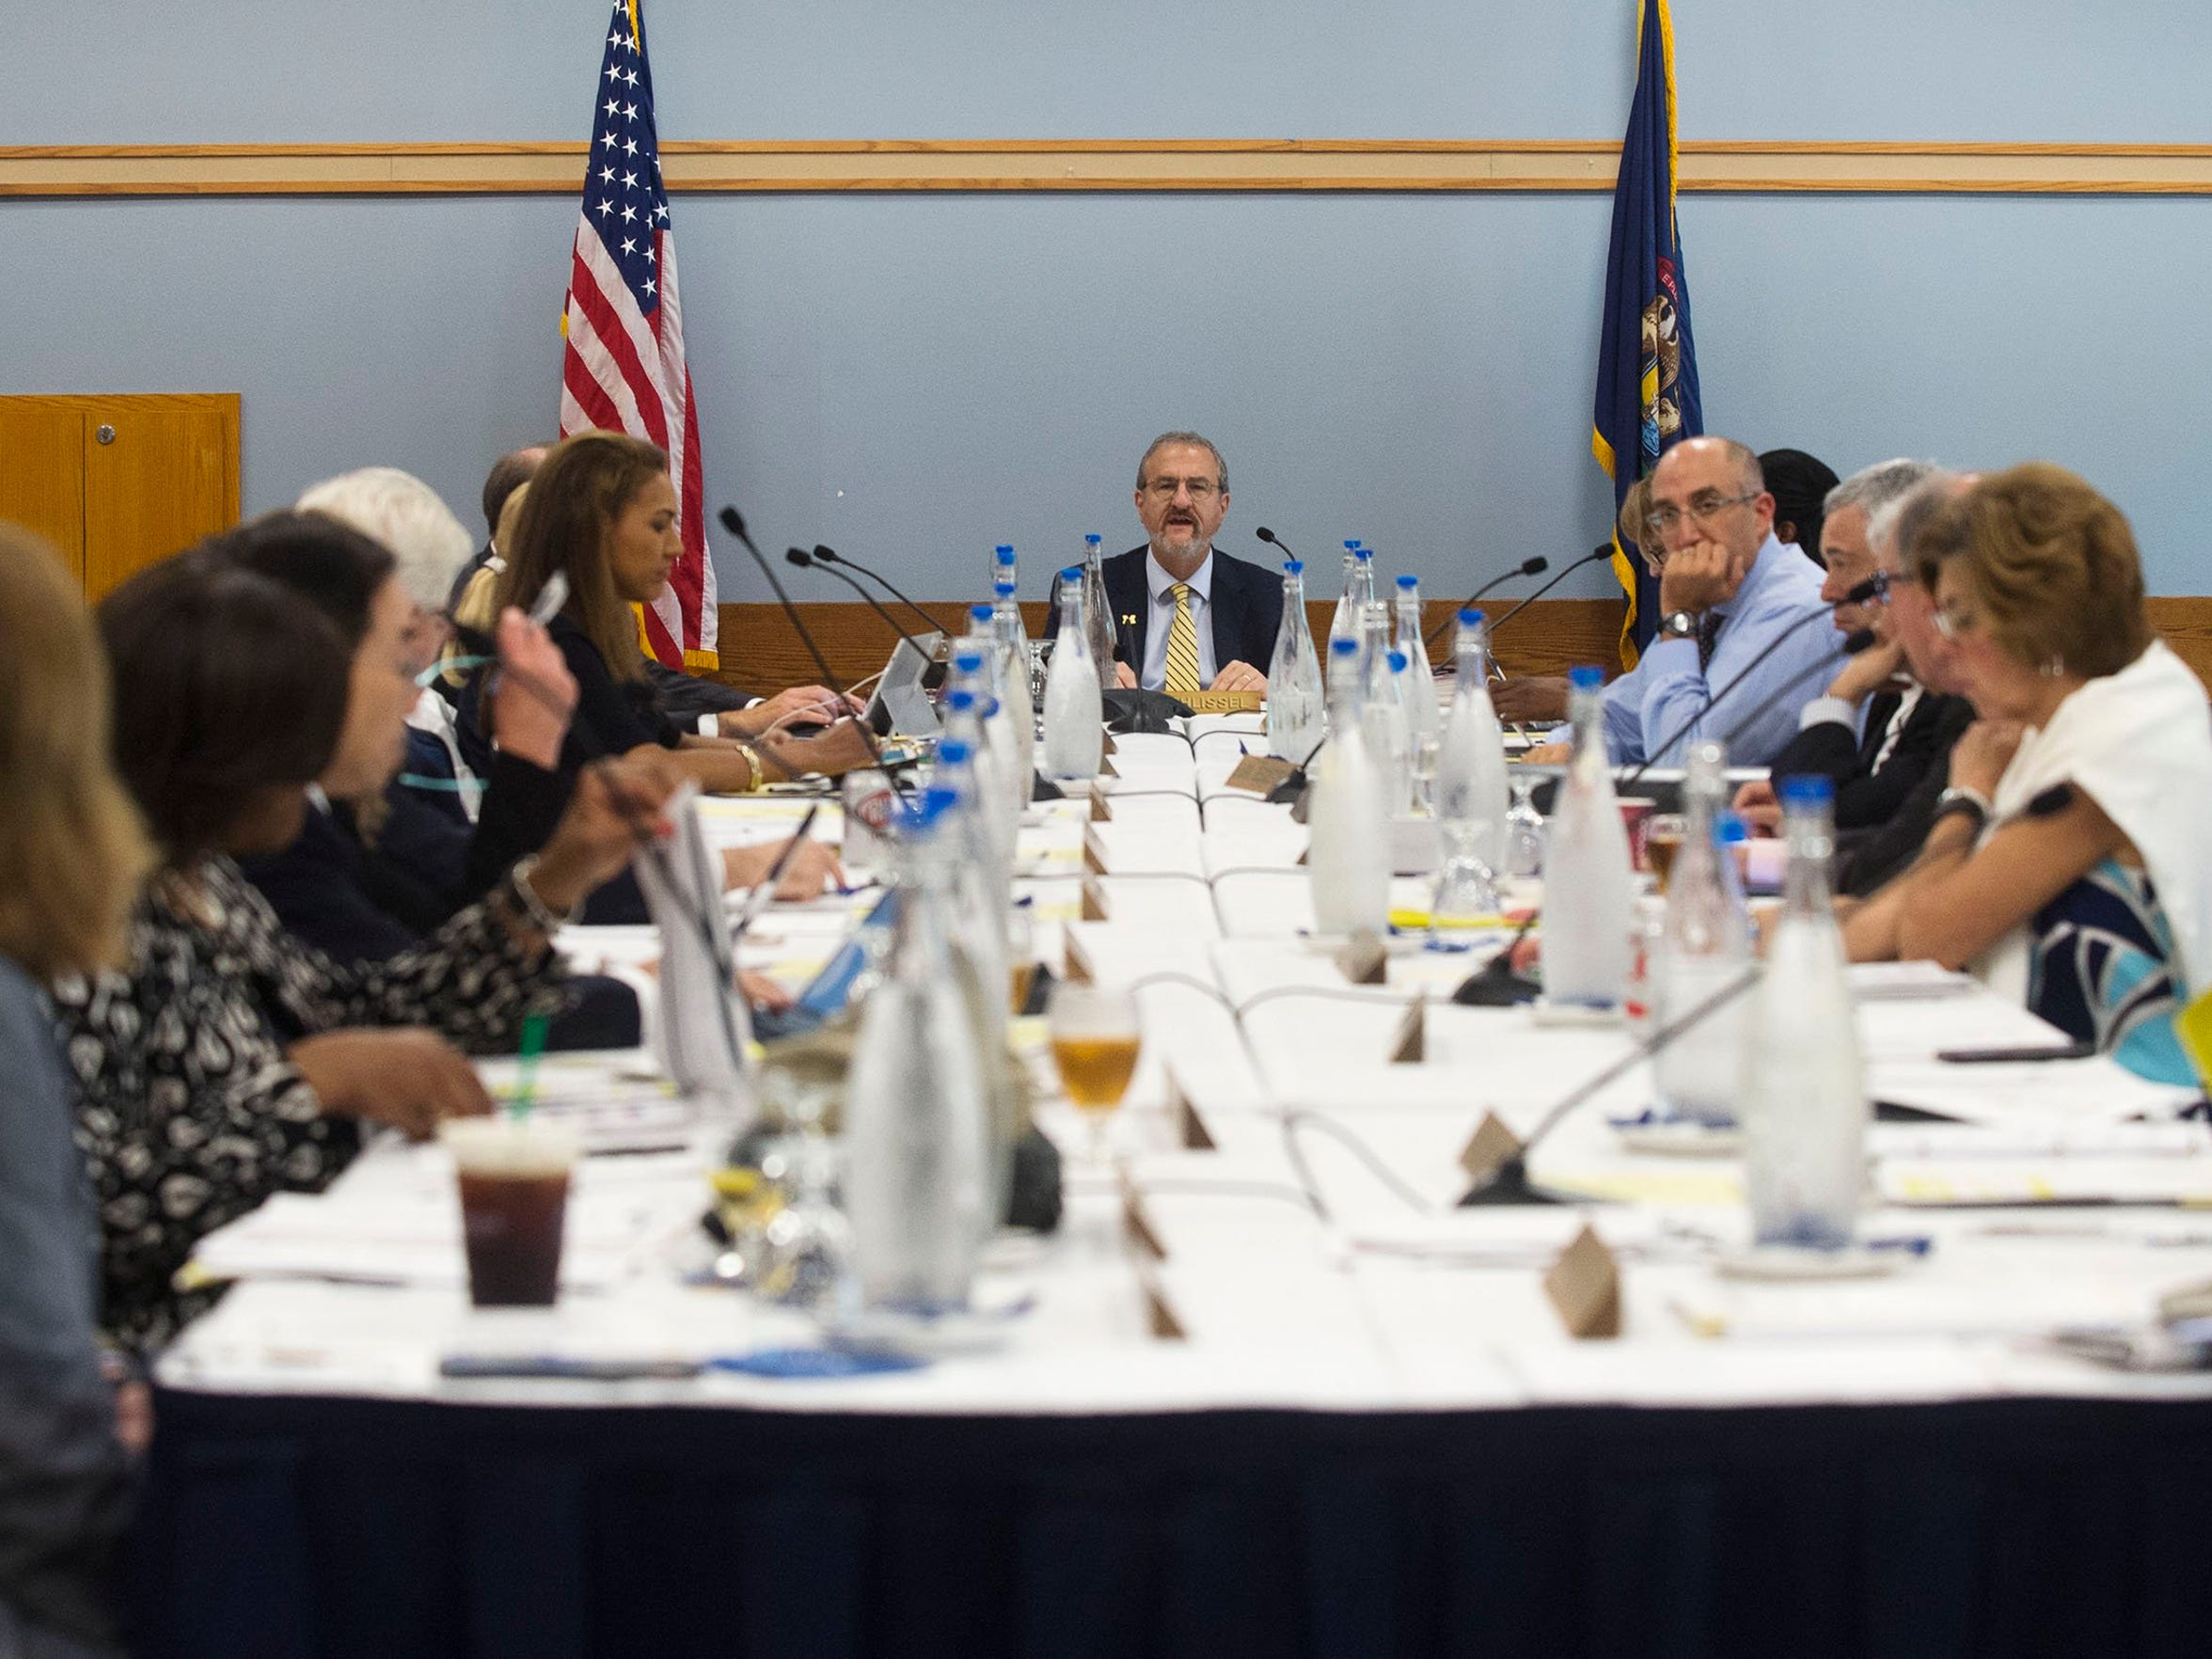 University of Michigan President Mark Schlissel, center, speaks during the Board of Regents meeting on Thursday, June 15, 2017, at the Michigan Union in Ann Arbor. Some U-M students would like to see top university officials spend more from the endowment to support students.